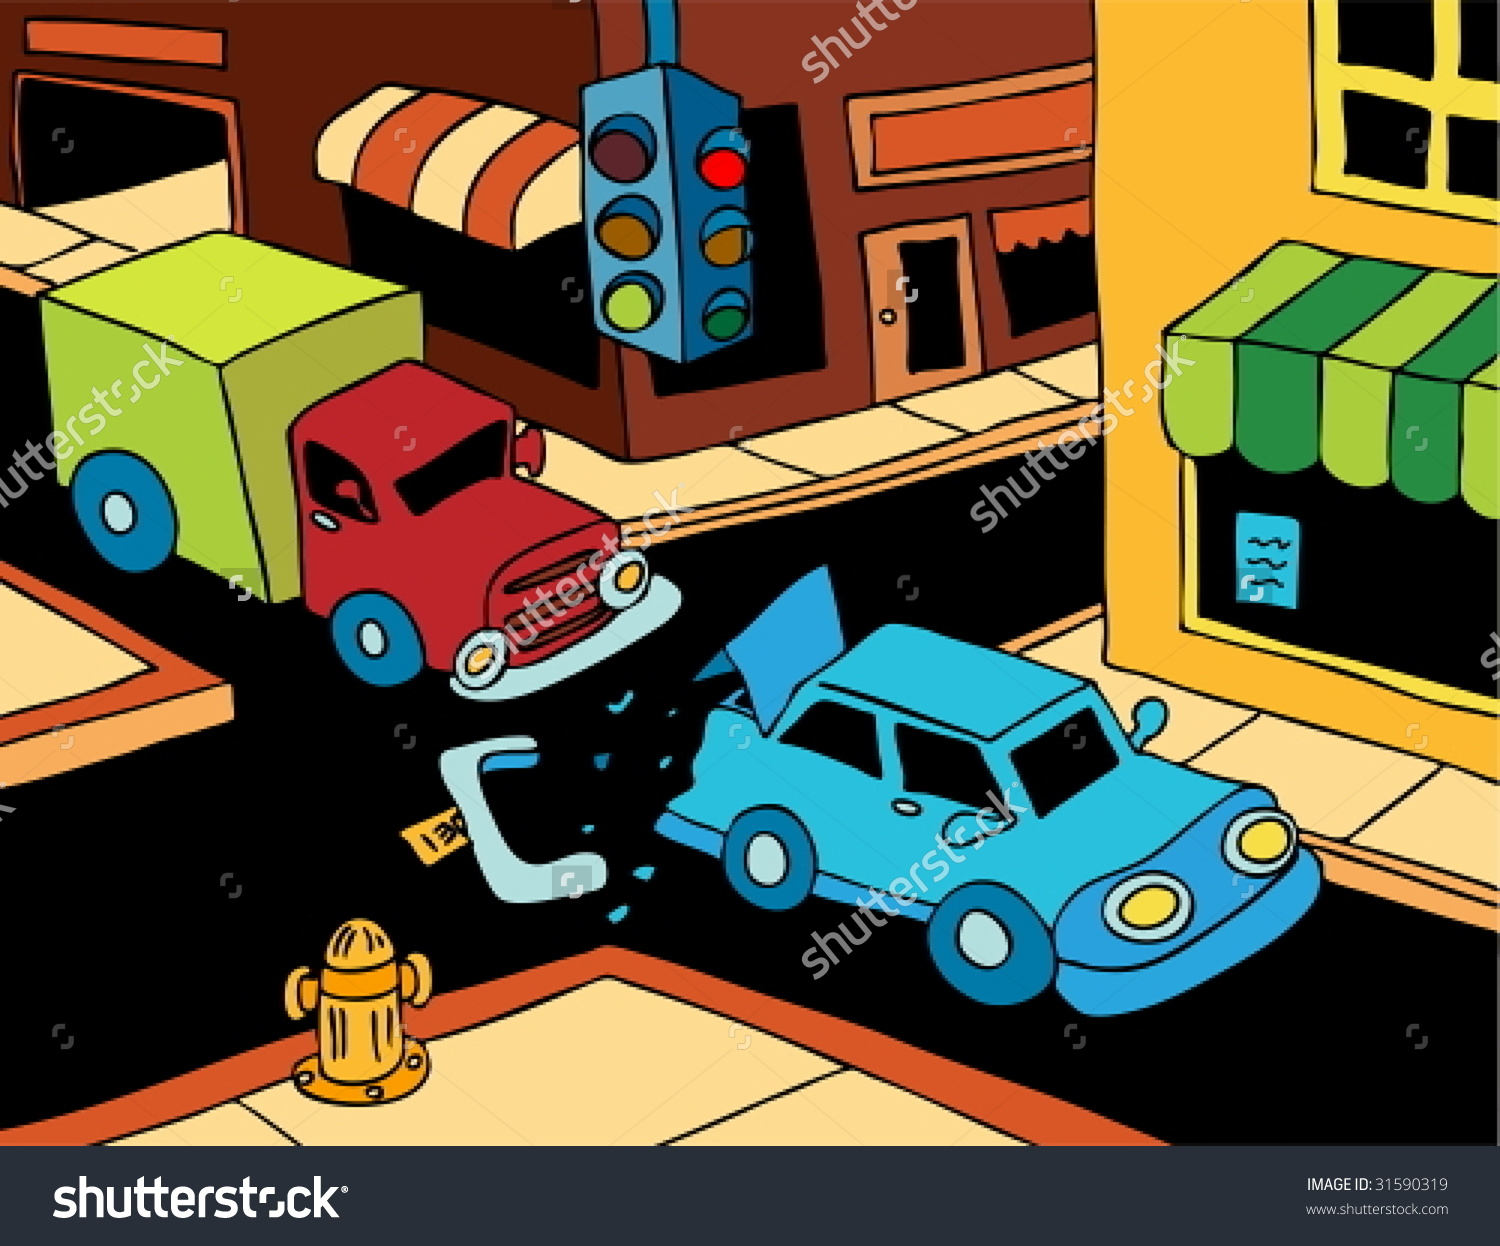 Rear end car crash clipart with truck and car.